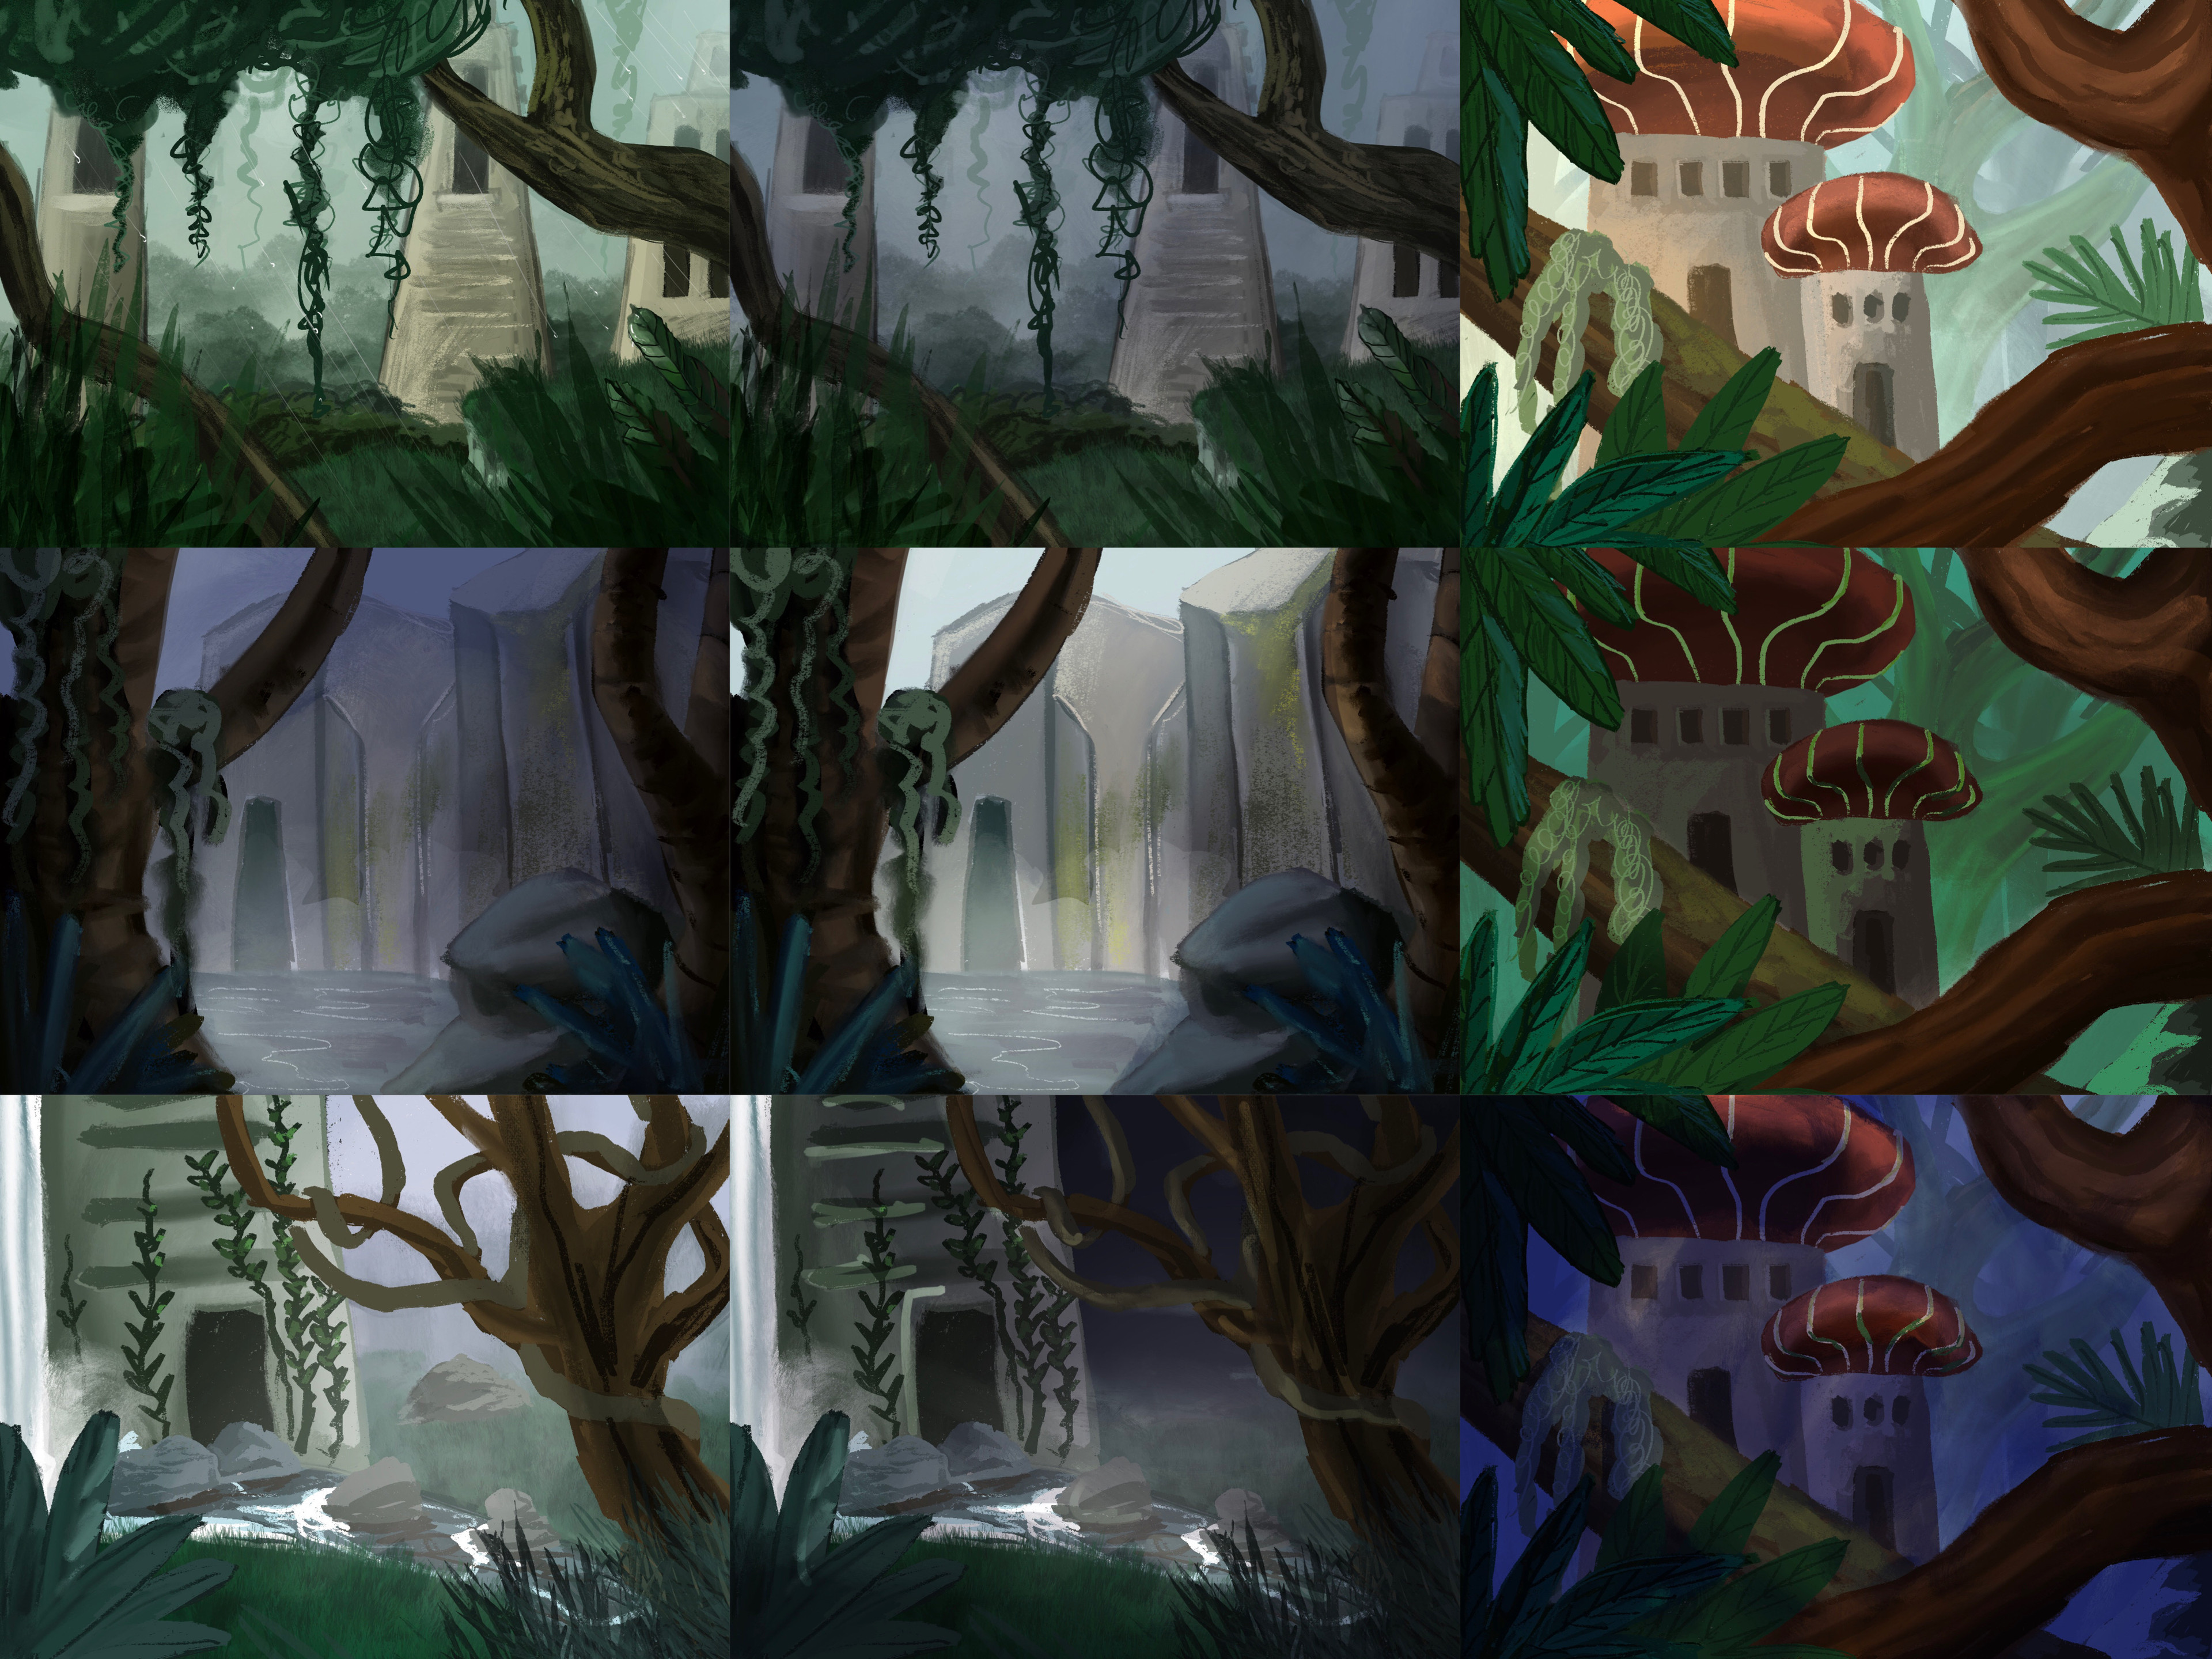 Color compositions based on the chosen thumbnails (I ended up cutting the first one)